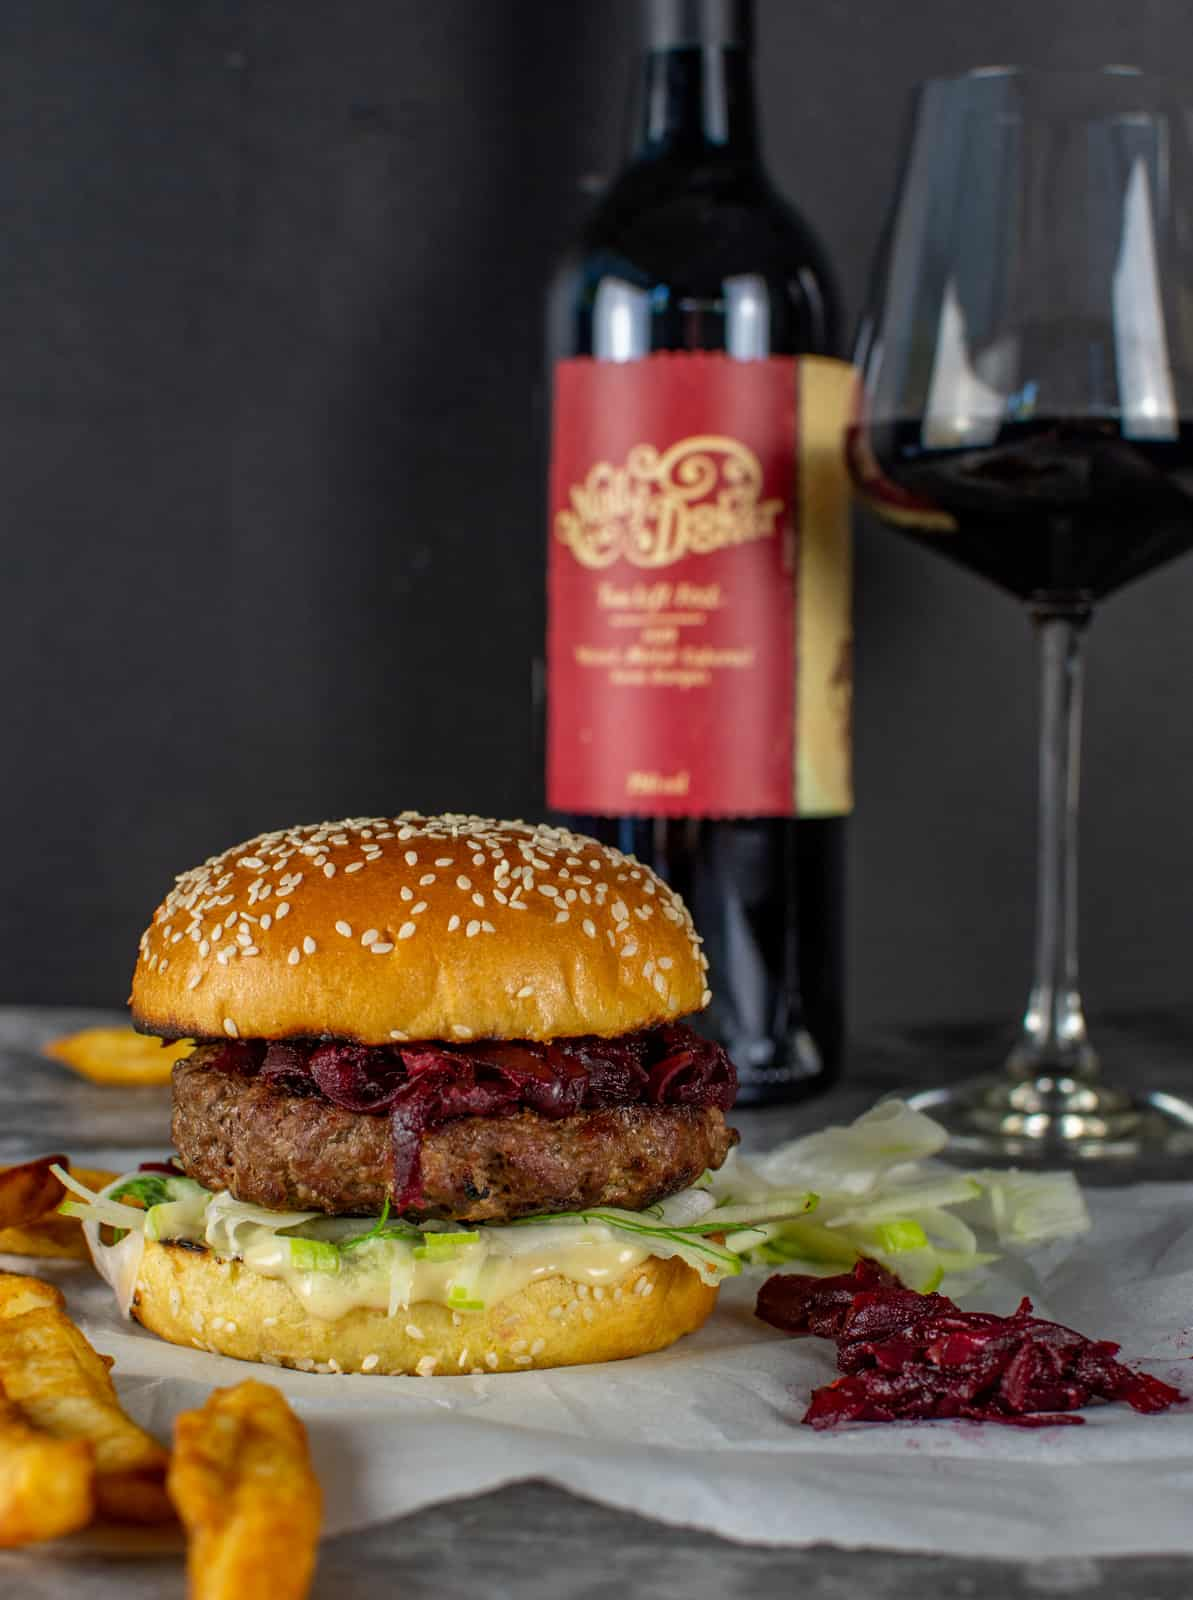 beef burger on parchmant paper with mollydooke wine behind it